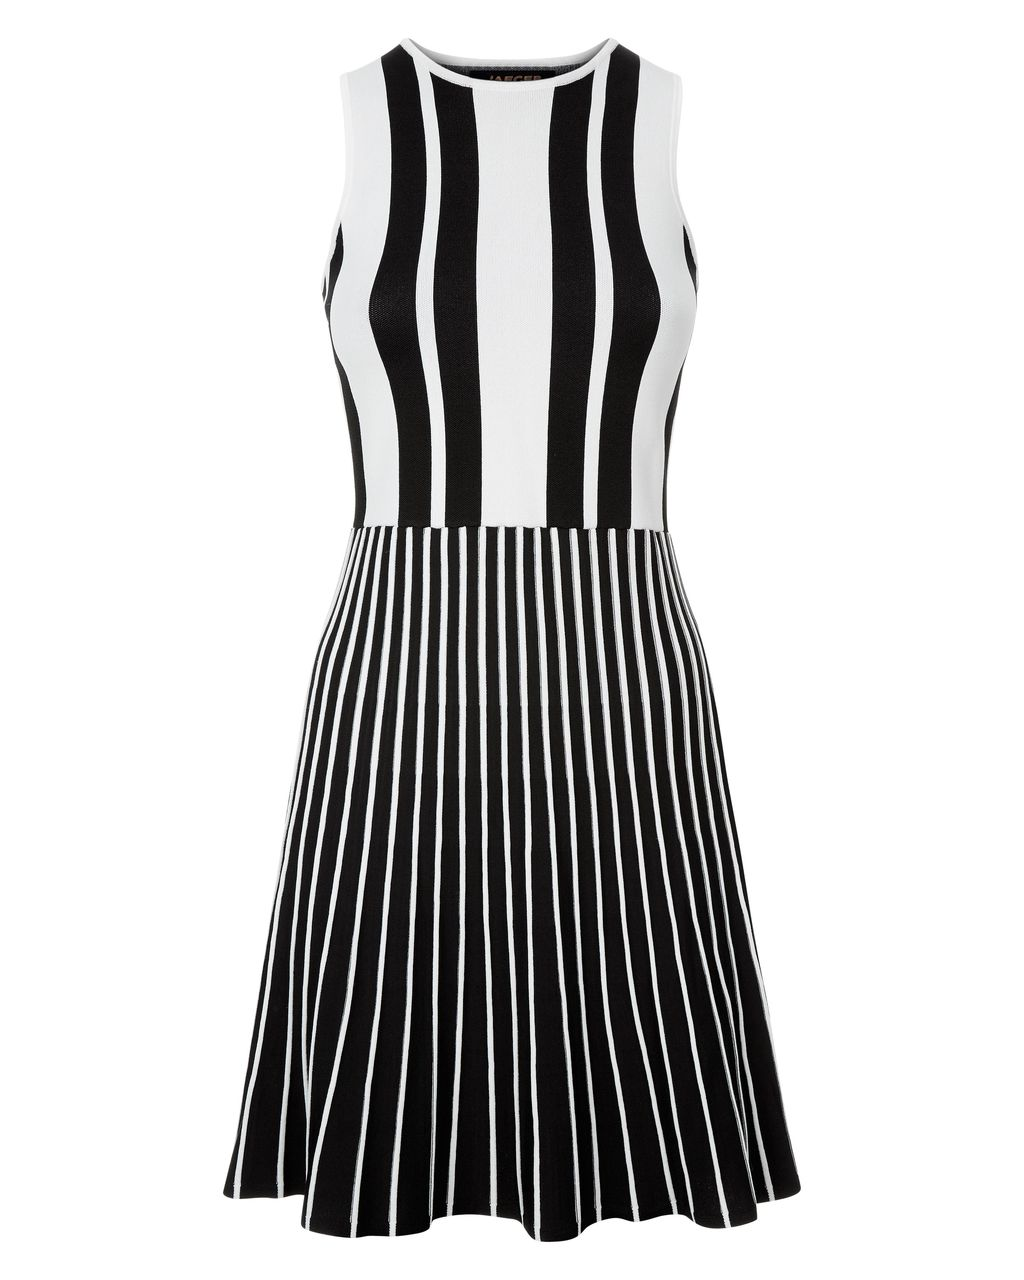 Striped Compact Knitted Dress, Black - pattern: vertical stripes; sleeve style: sleeveless; predominant colour: white; secondary colour: black; occasions: evening; length: just above the knee; fit: fitted at waist & bust; style: fit & flare; fibres: viscose/rayon - stretch; neckline: crew; sleeve length: sleeveless; pattern type: fabric; texture group: jersey - stretchy/drapey; multicoloured: multicoloured; season: s/s 2016; wardrobe: event